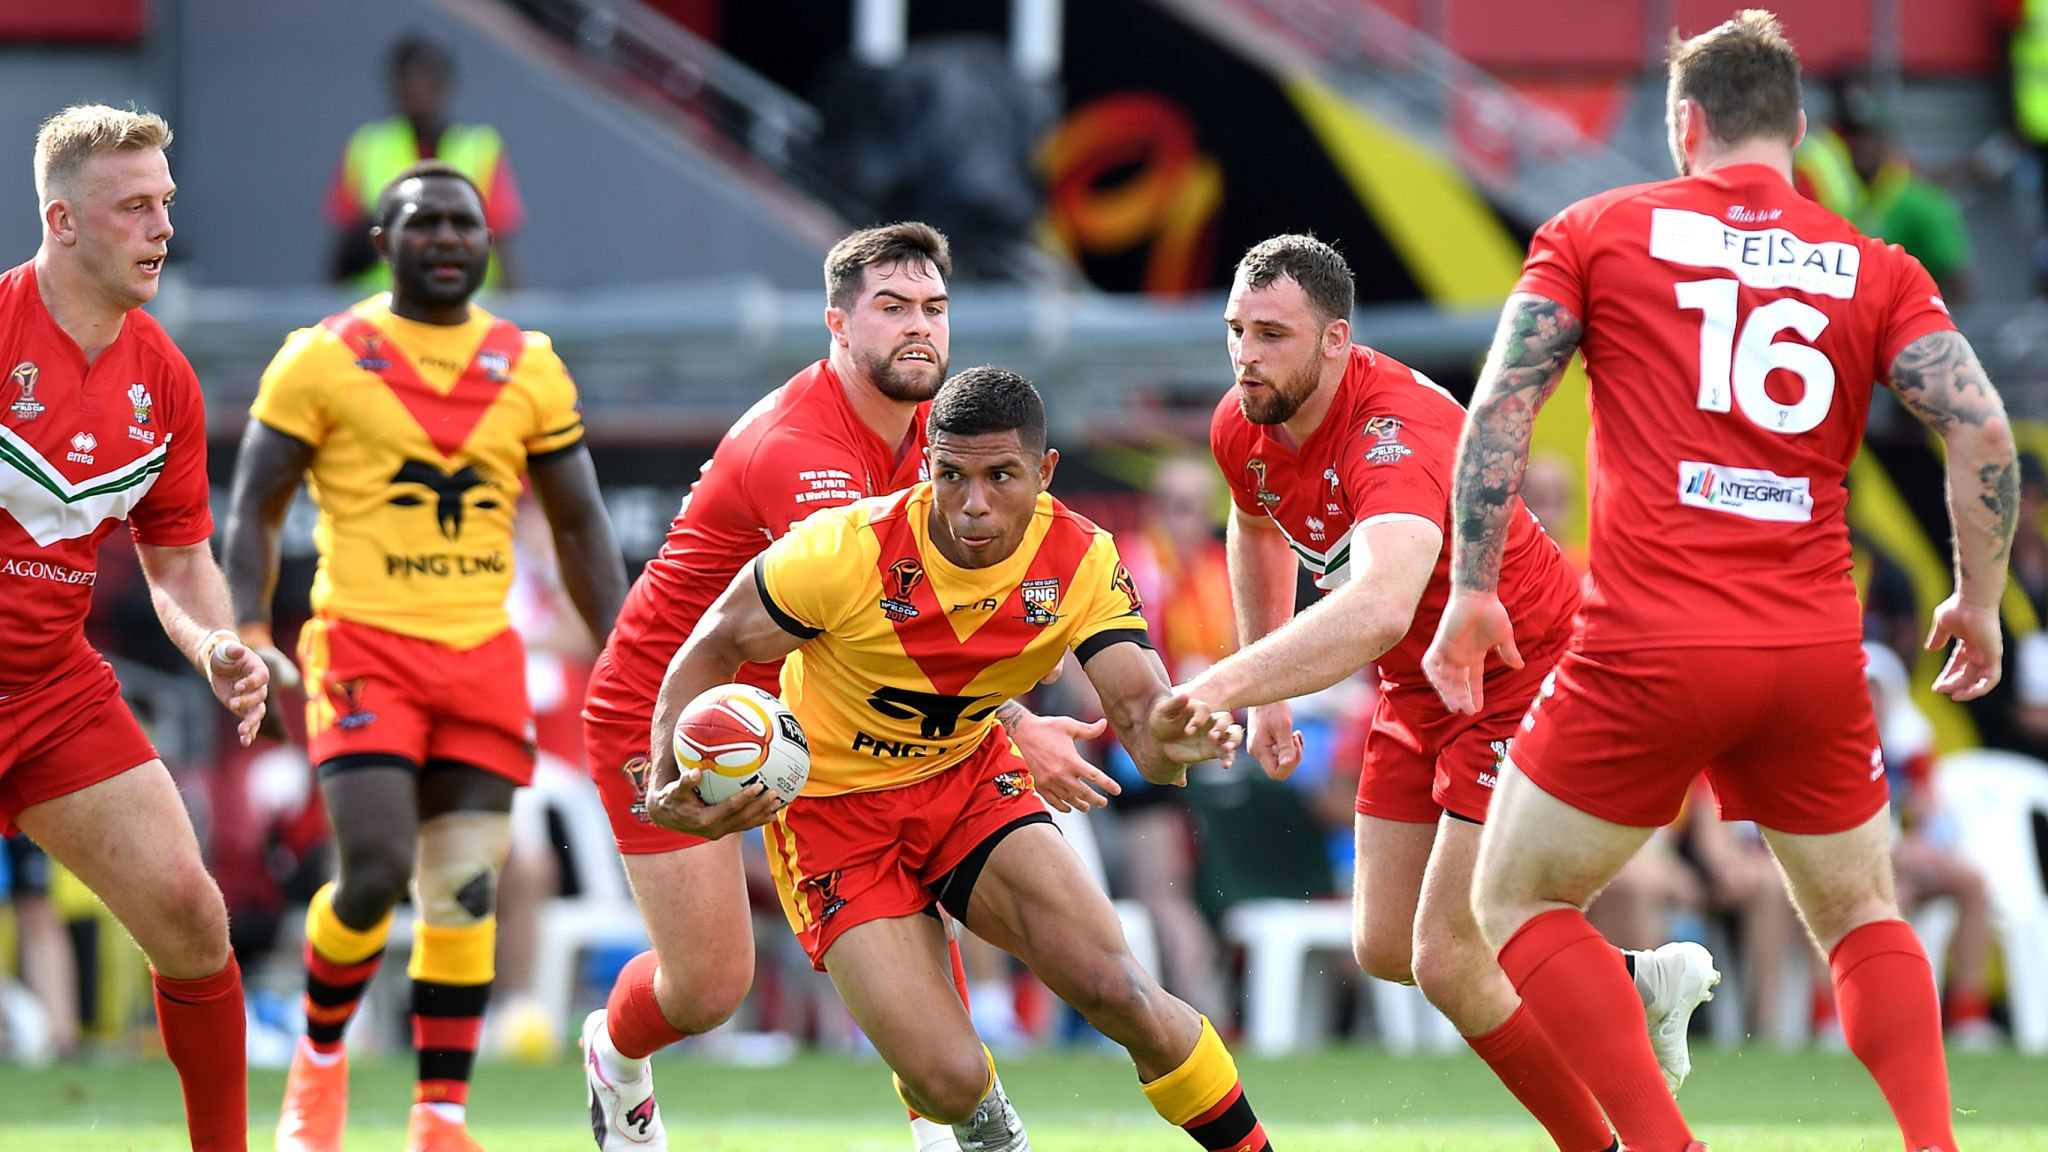 Papua New Guinea: A thriving rugby league nation.